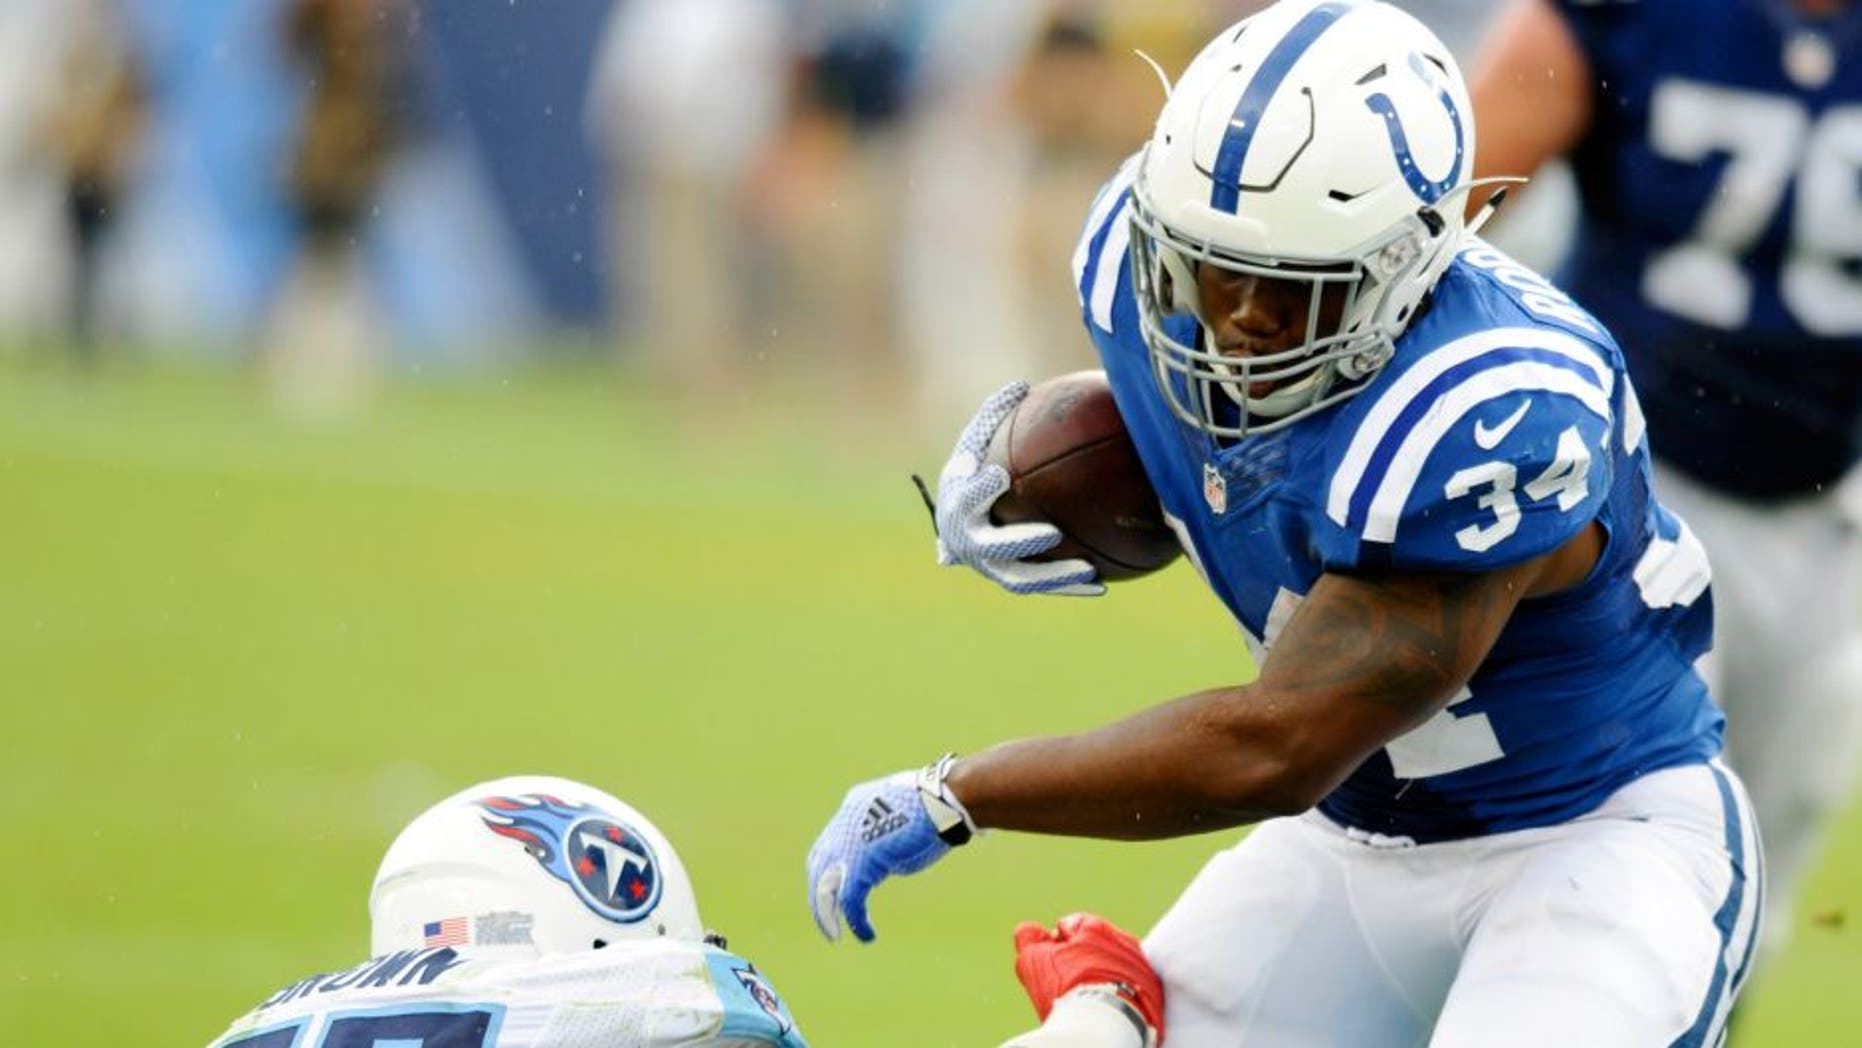 Sep 27, 2015; Nashville, TN, USA; Indianapolis Colts running back Josh Robinson (34) fights off a tackle during the second half against the Tennessee Titans at Nissan Stadium. The Colts won 35-33. Mandatory Credit: Christopher Hanewinckel-USA TODAY Sports